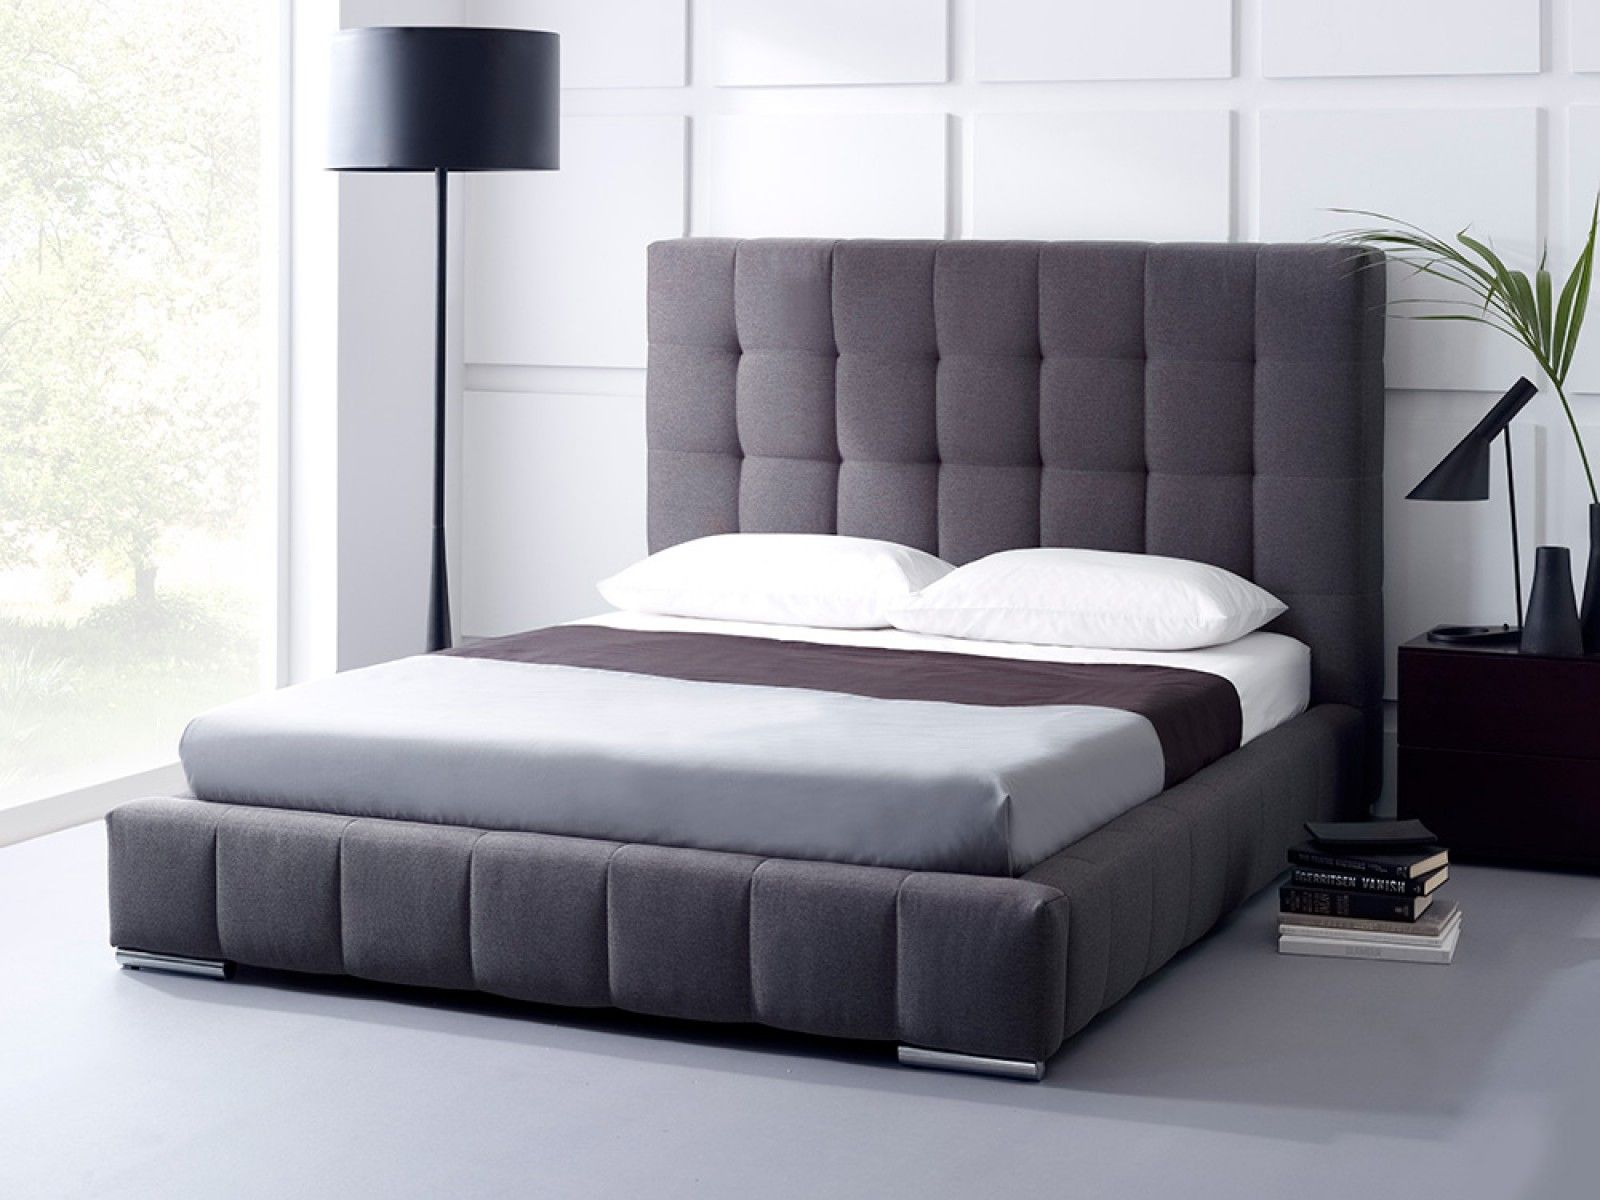 Ava GRID TUFTED upholstered storage bed   Living It Up HEADBOARD ...